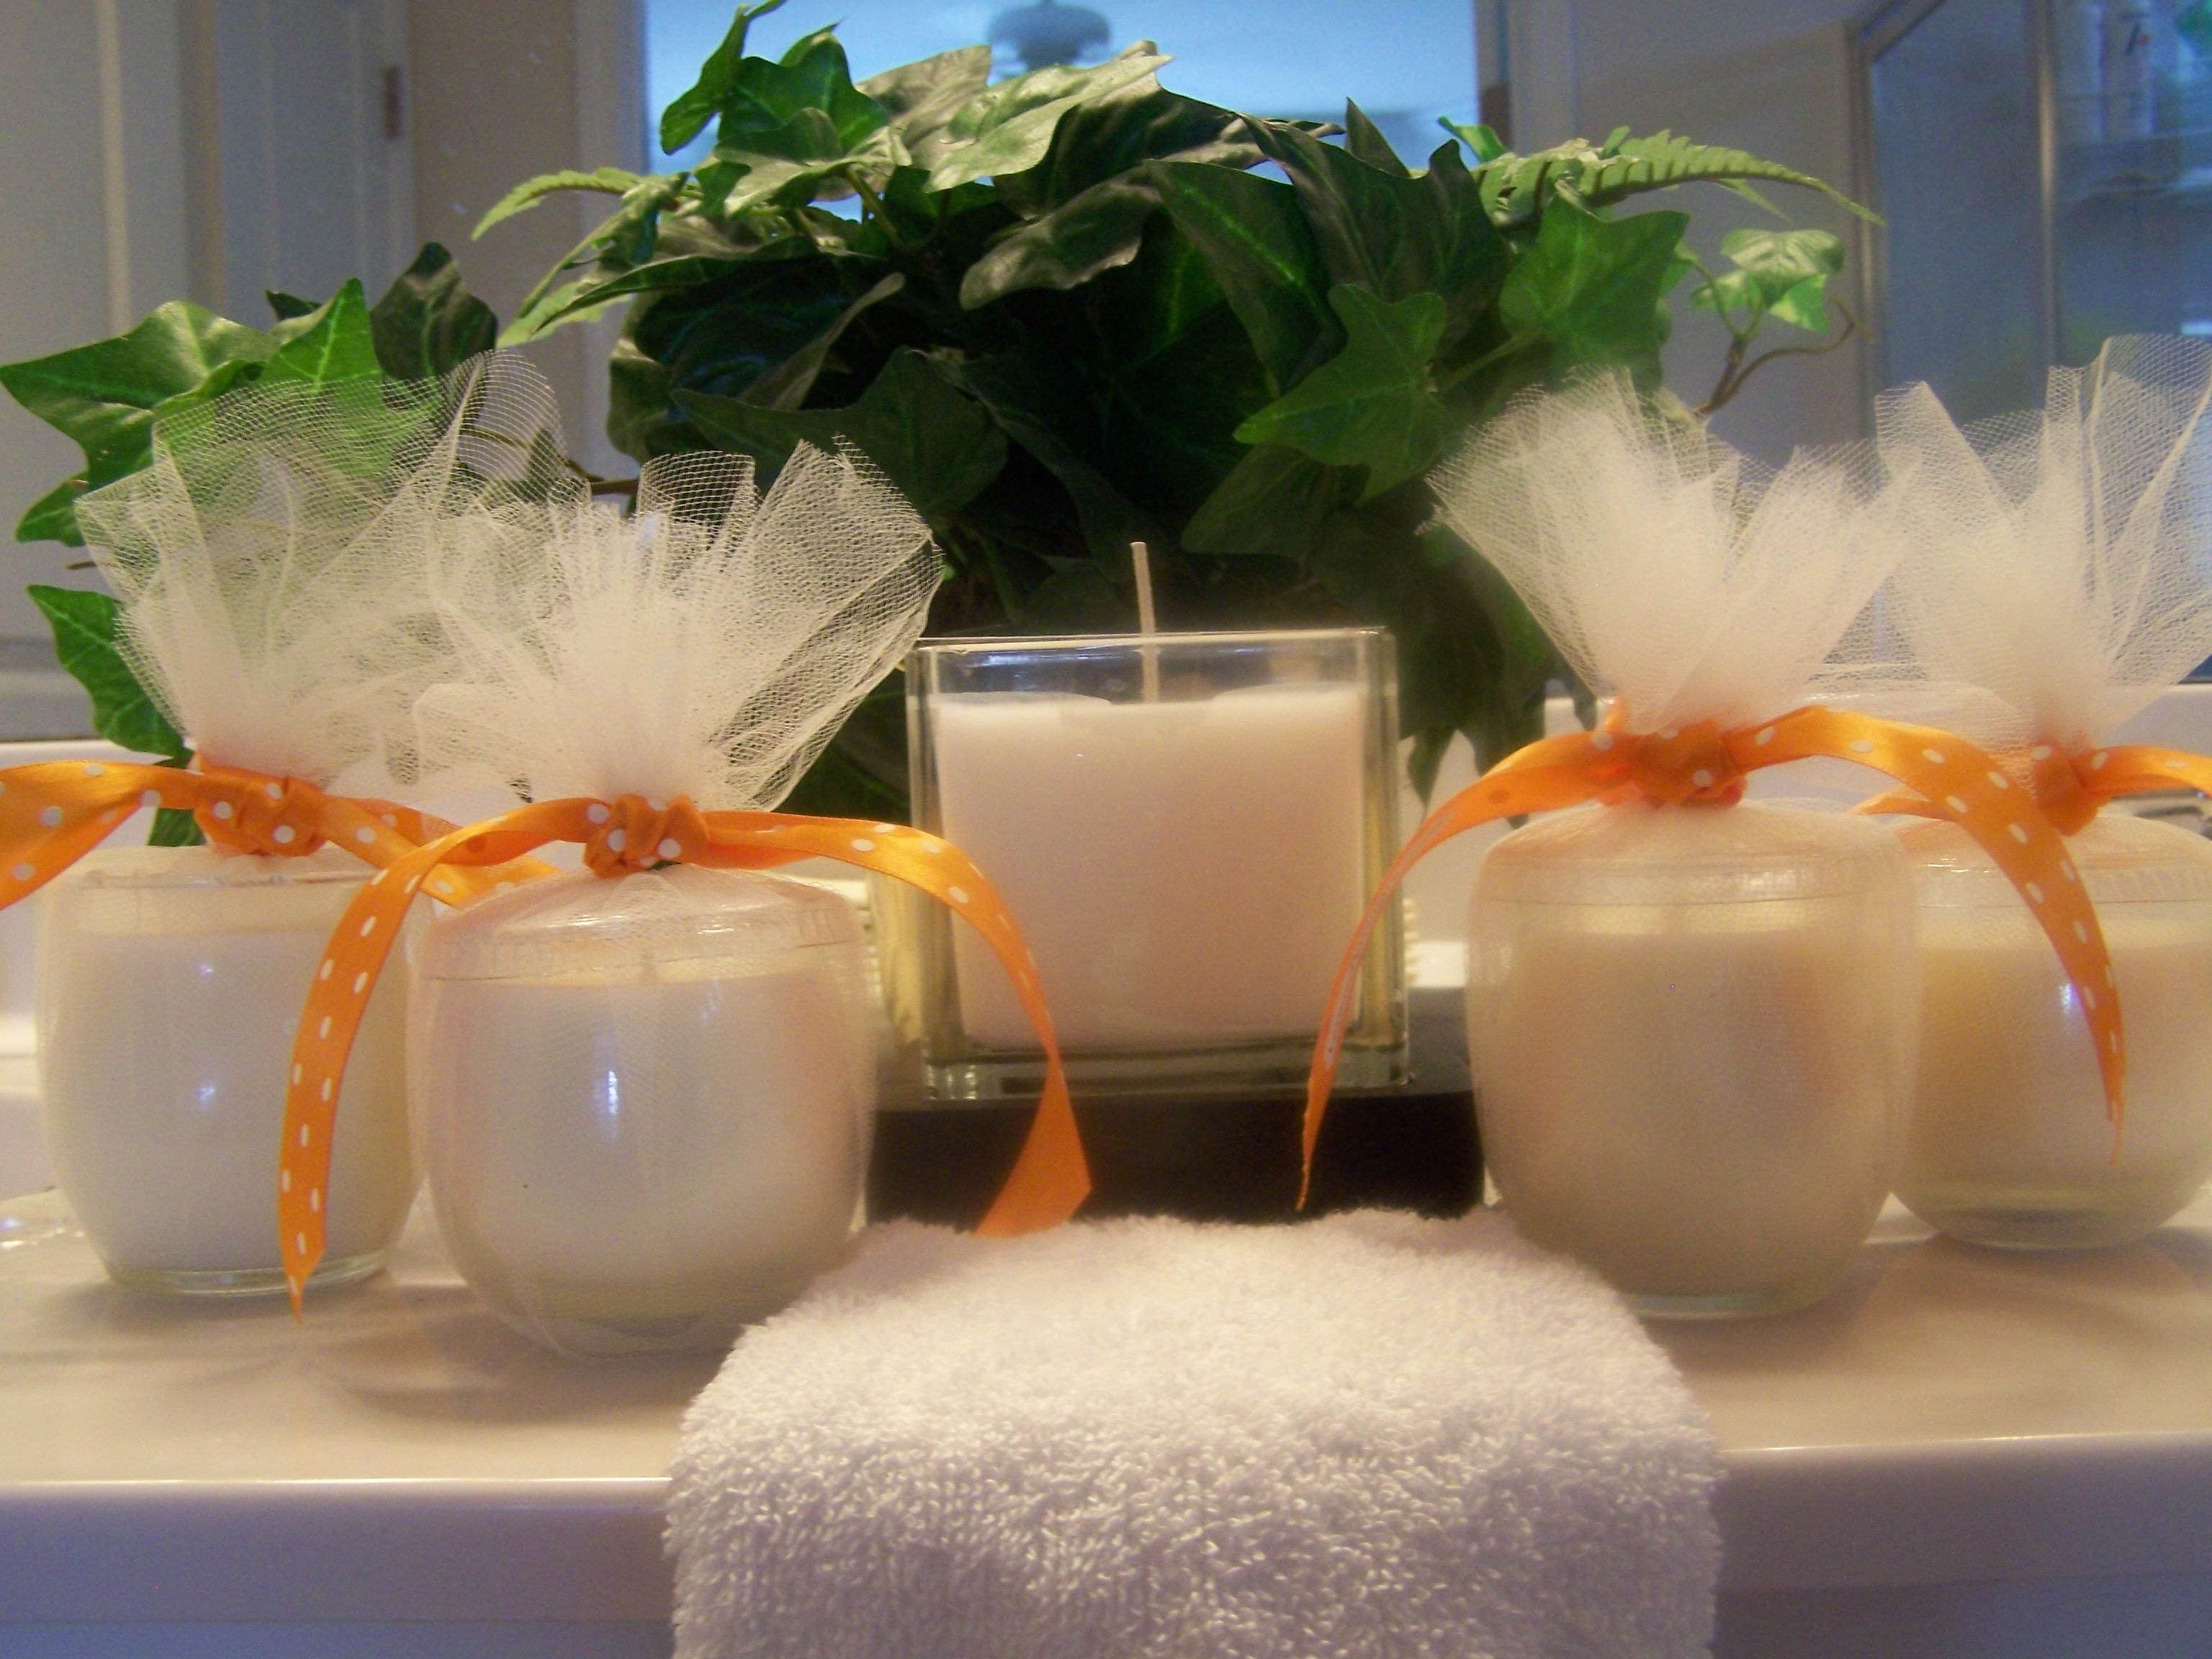 Soy Massage/Lotion Candles with Lemongrass Essential Oil